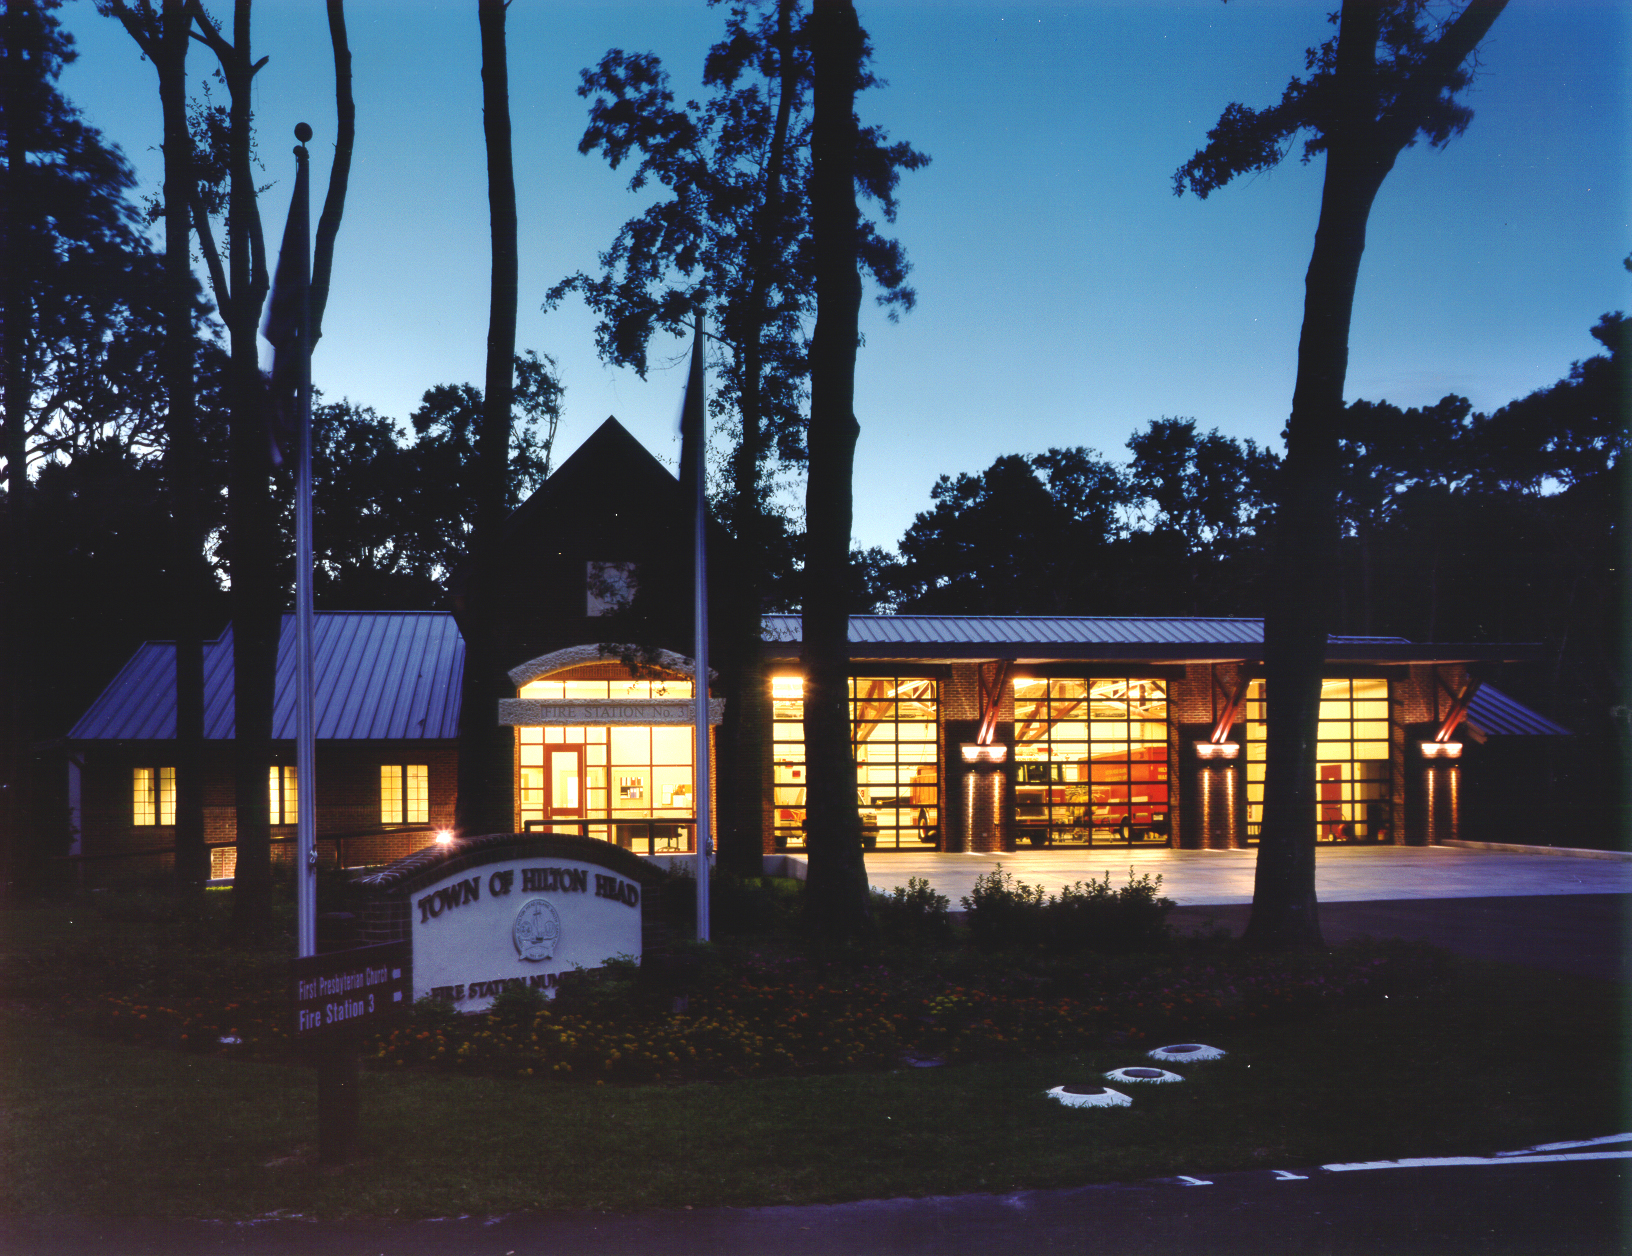 TOWN OF HILTON HEAD ISLAND FIRE STATION No. 3